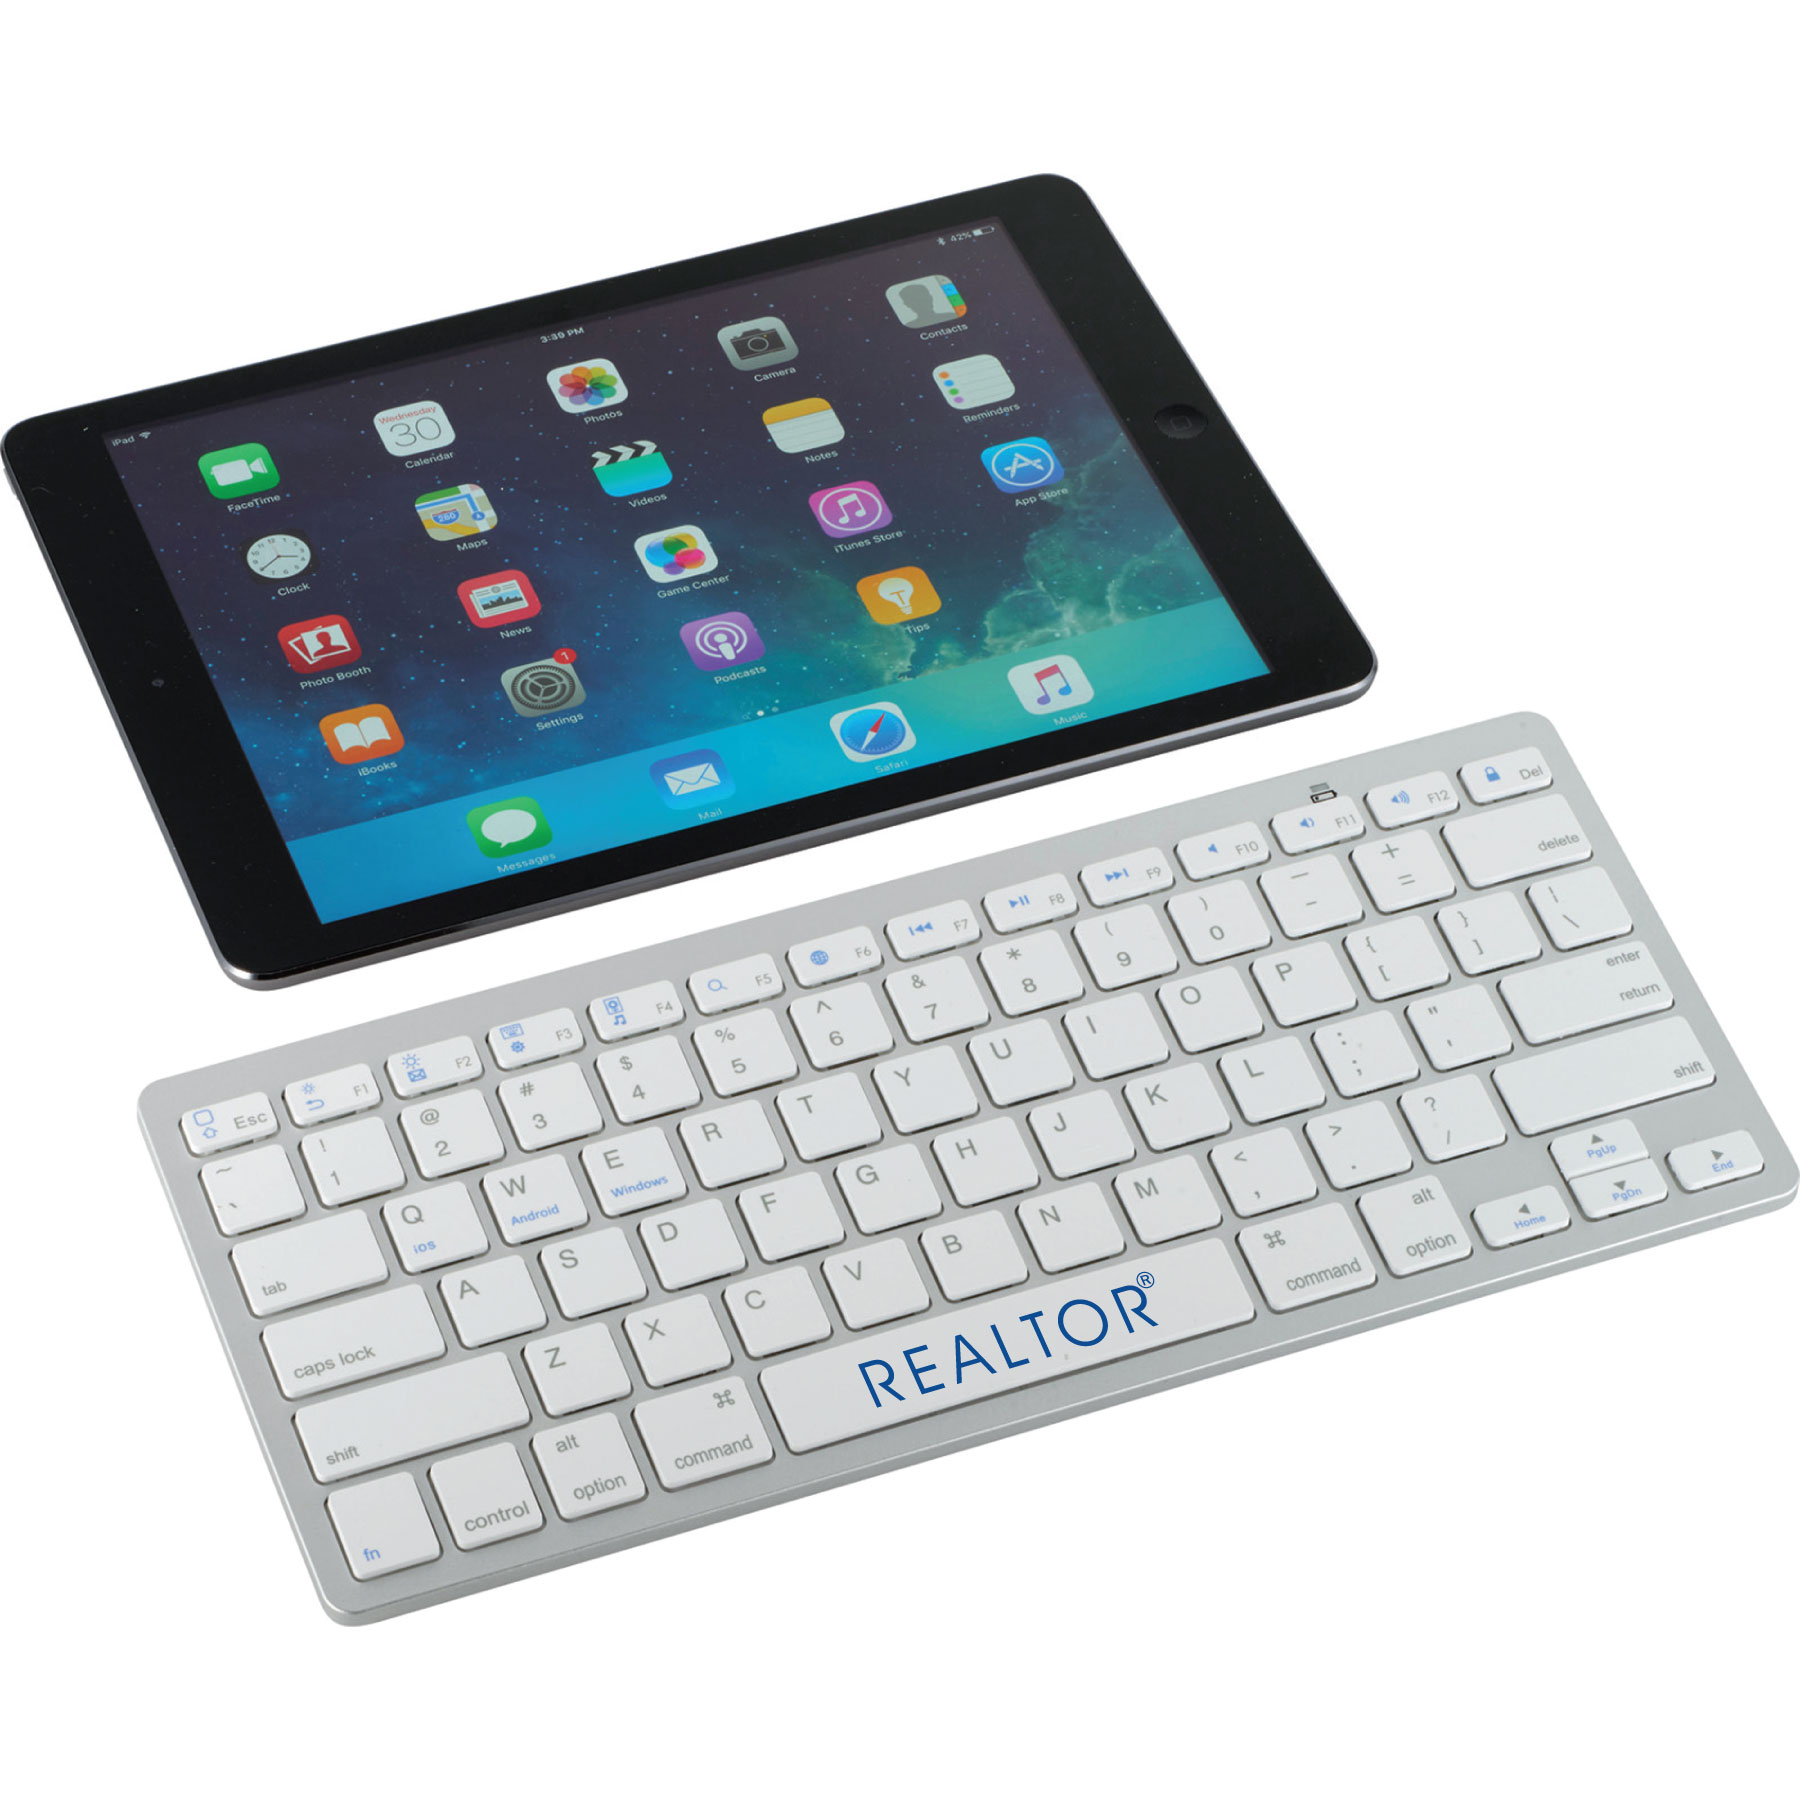 Explorer Bluetooth Keyboard Keyboards,Type,Keys,External,Bluetooths,